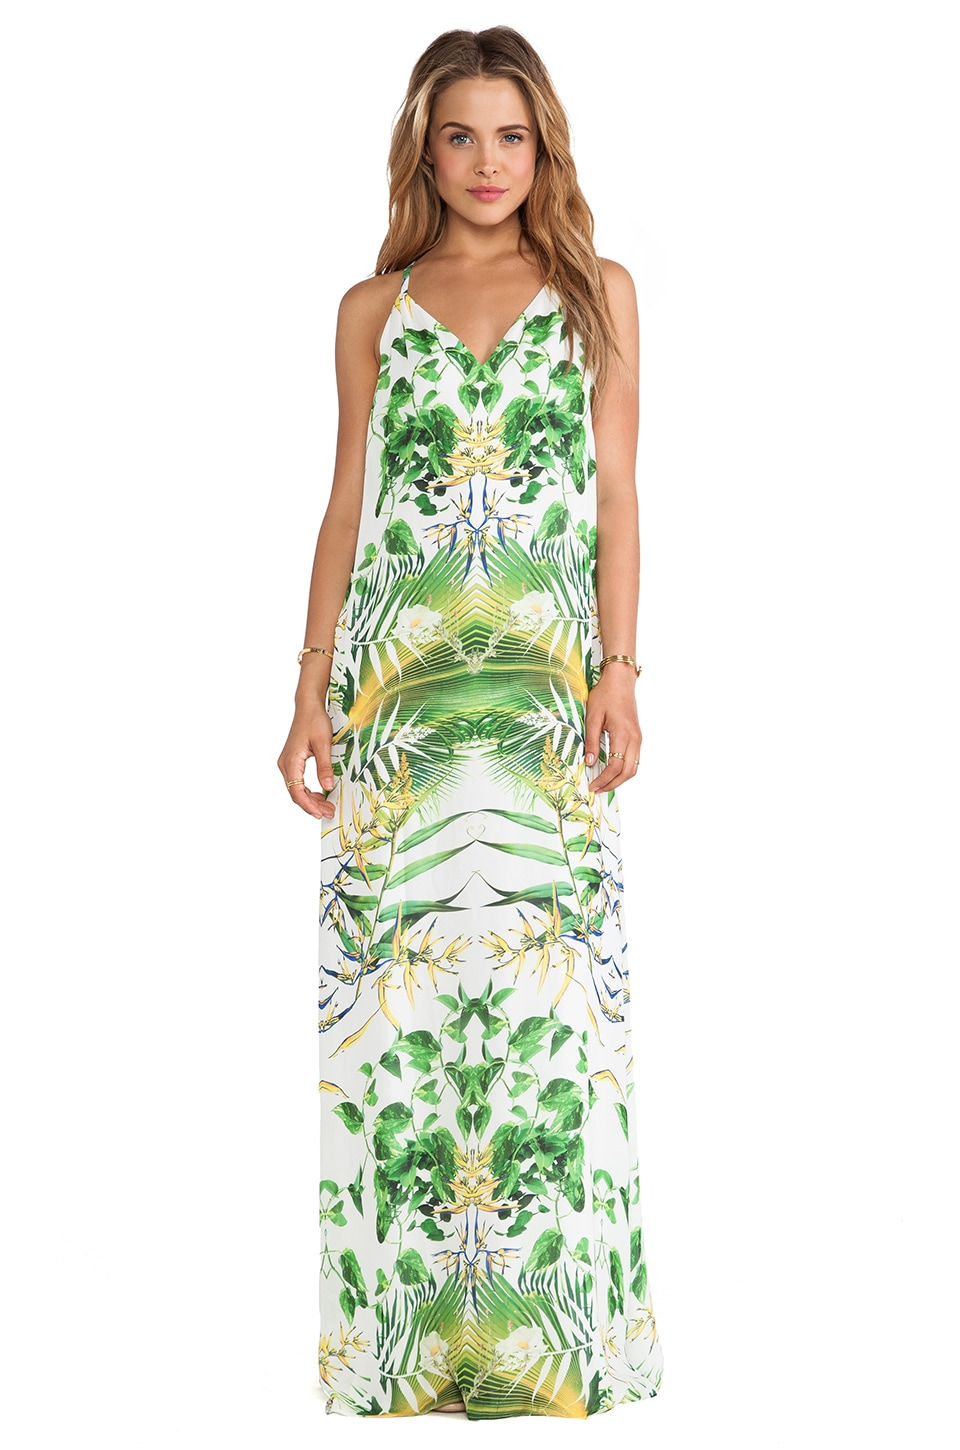 Alice + Olivia Dove Relaxed Maxi Dress in Sunburst Palm